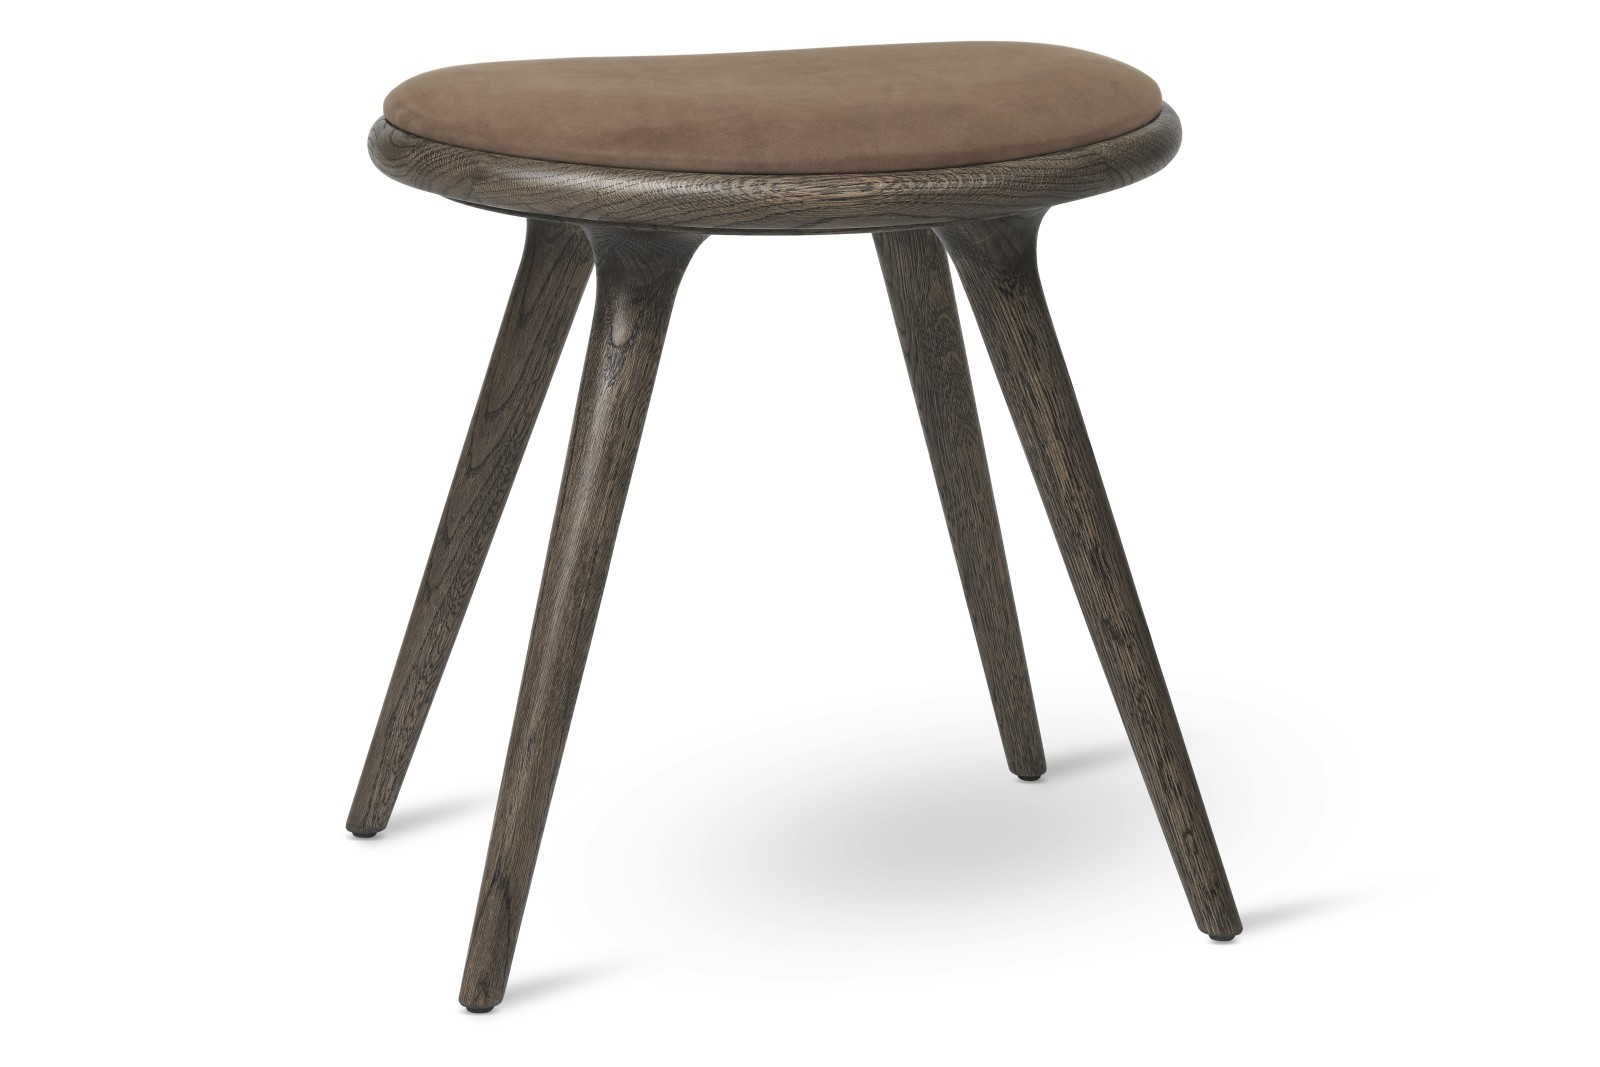 Low Stool Sirka Grey Stained Solid Oak, Brown, 47H